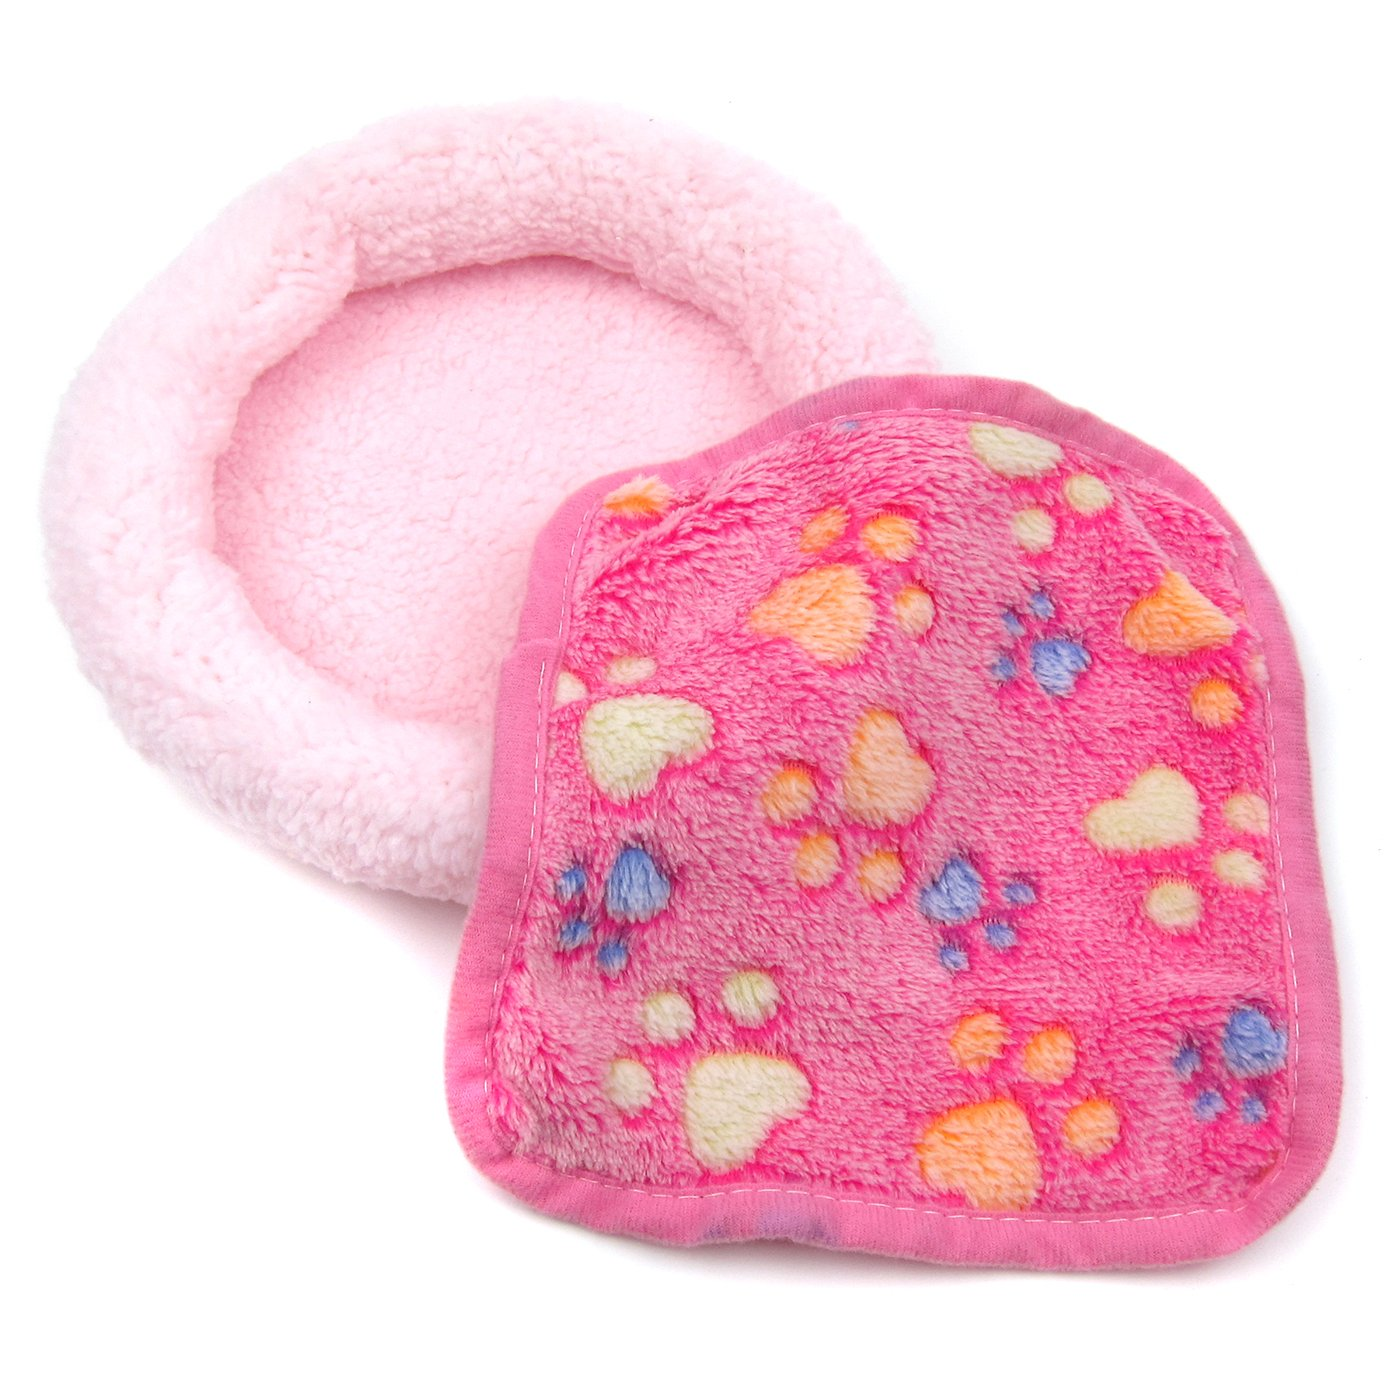 Alfie Pet by Petoga Couture - Fallon Sleeping Mat and Blacket Set for Small Animals like Dwarf Hamster and Mouse - Color: Pink